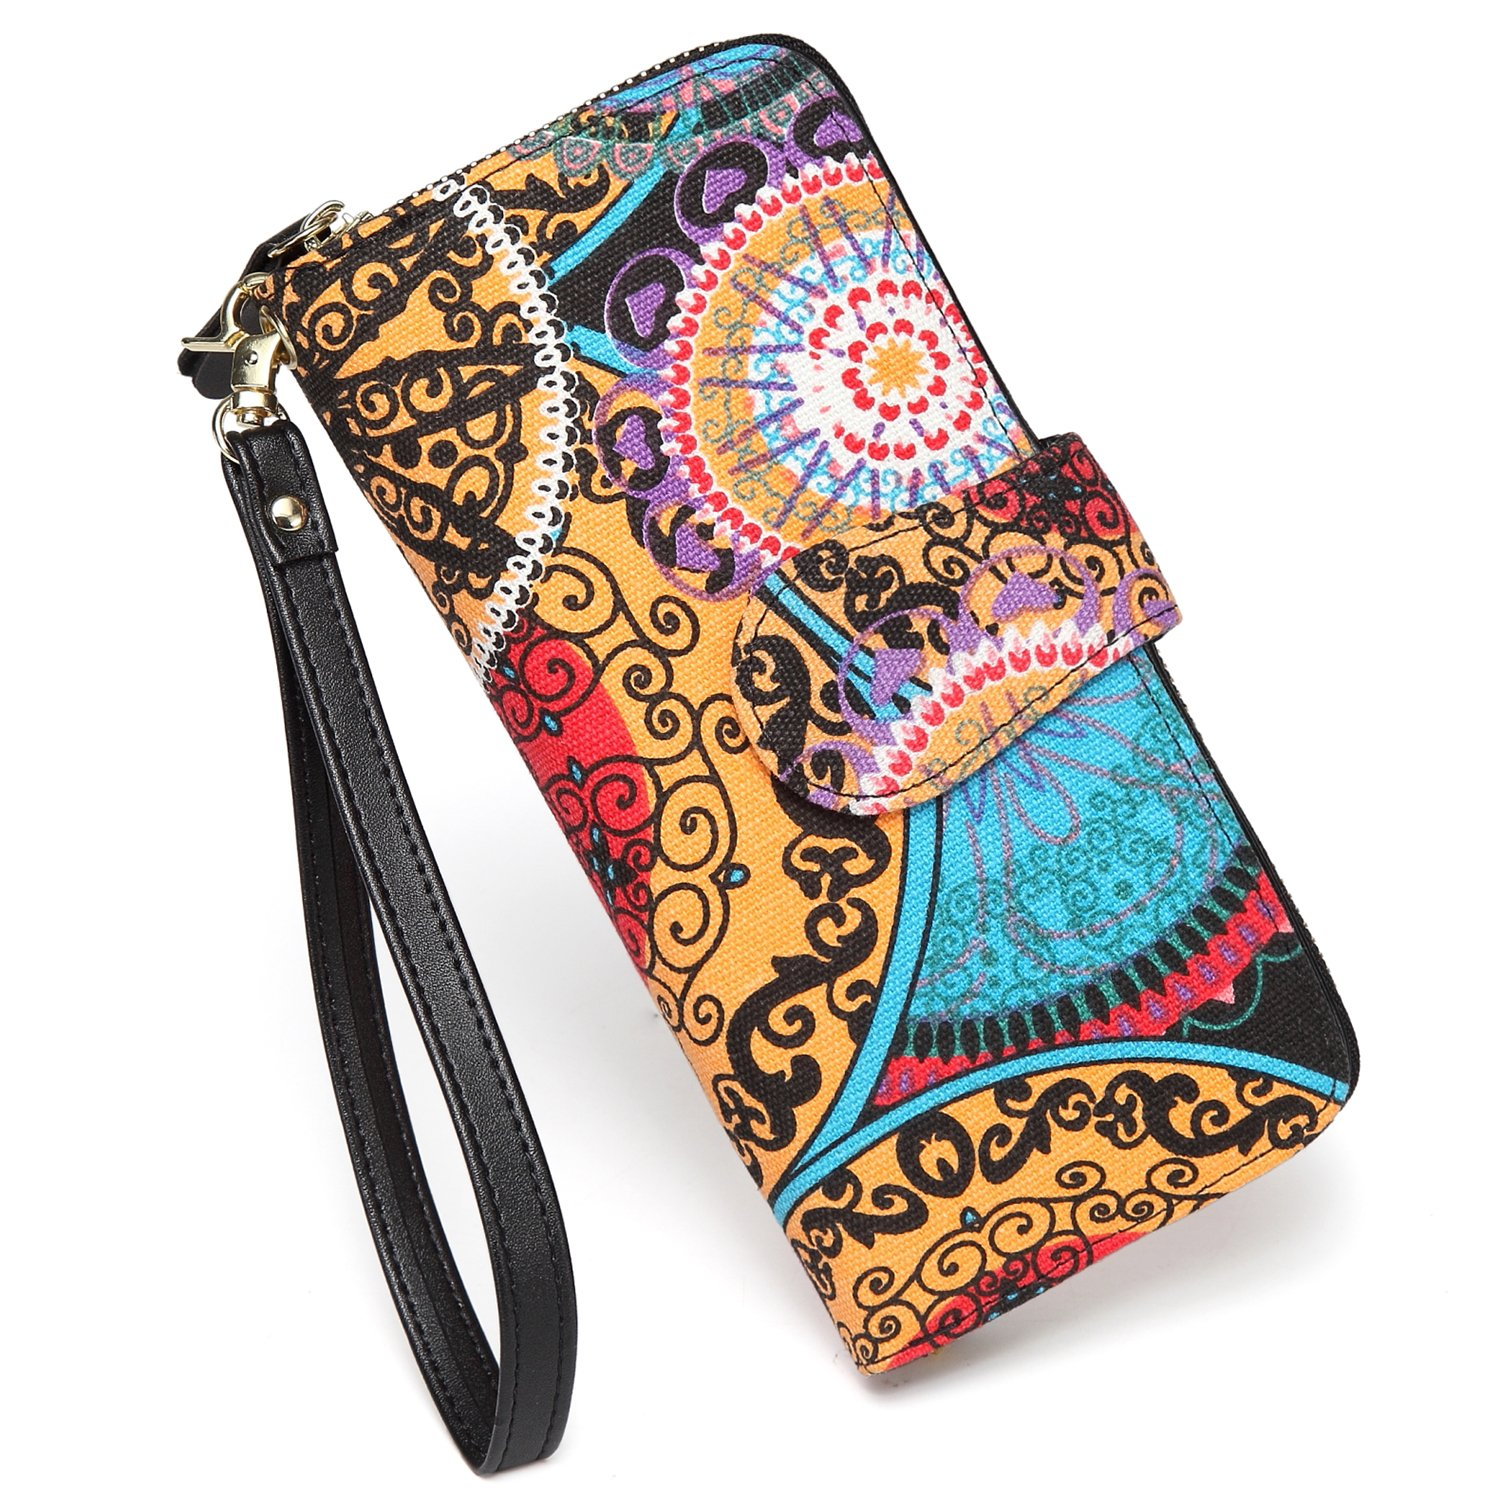 SANSARYA Boho Wristlet Zipper Women Wallets Bifold Snap Ladies Canvas Clutch Wallet with Strap,Large Capacity by SANSARYA